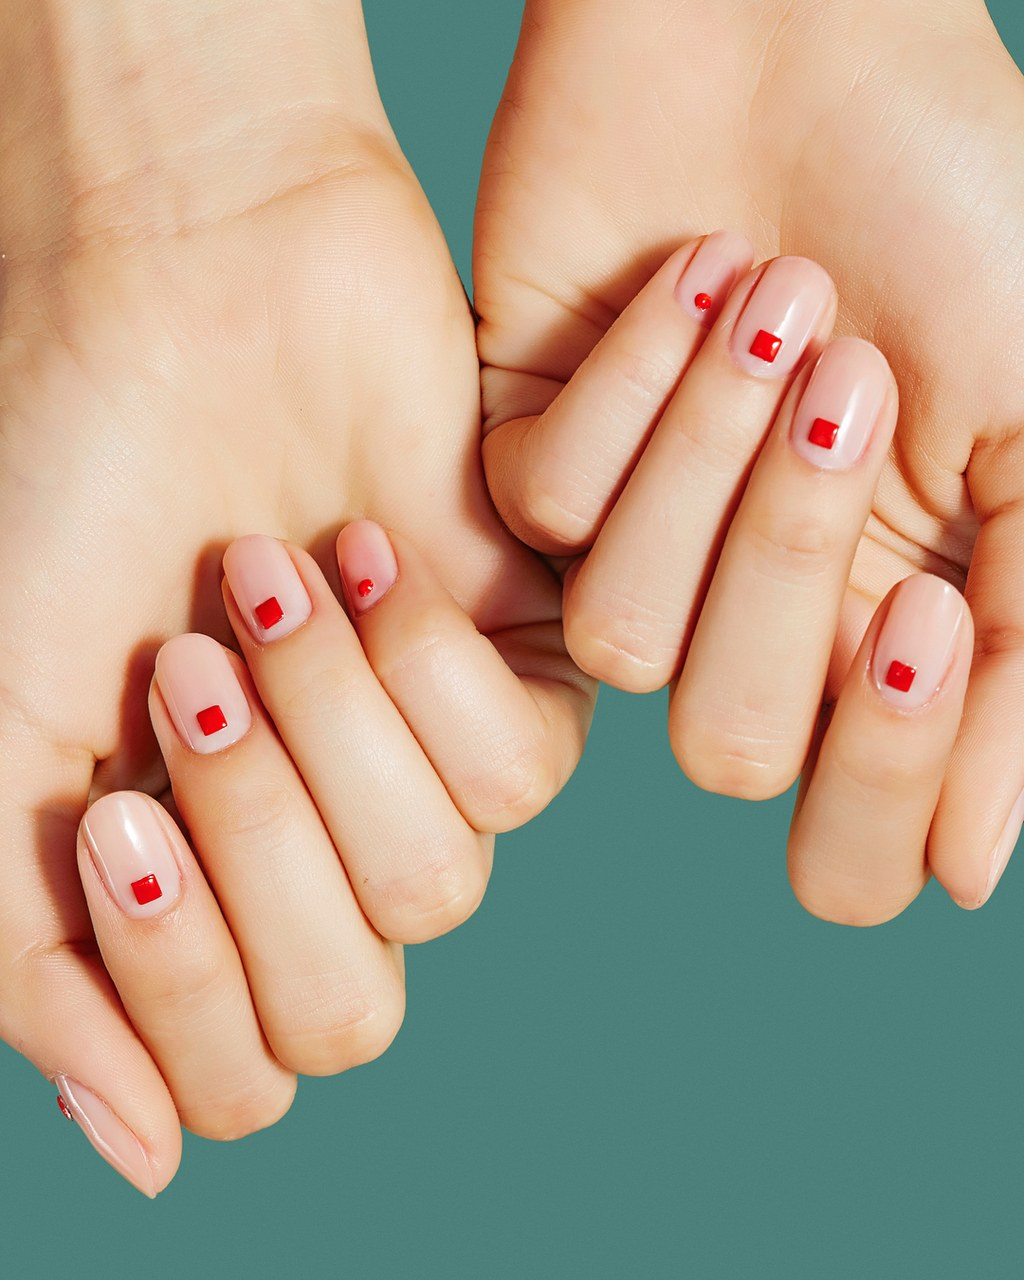 Nail Designs And Nail Art Latest Trends: Nail-art-trends-2018